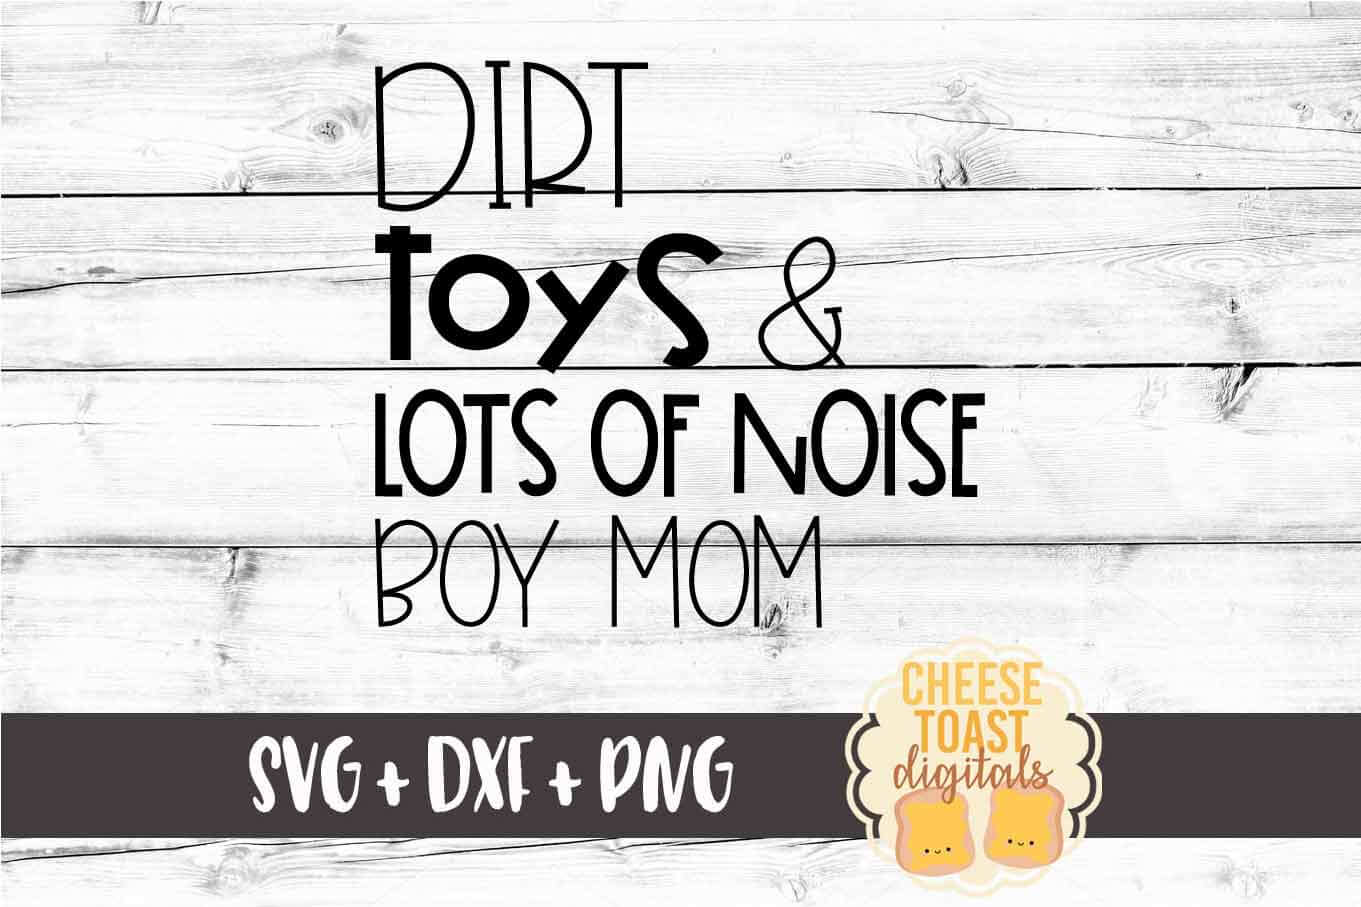 Dirt Toys & Lots of Noise Boy Mom - Funny Mom SVG PNG DXF example image 2